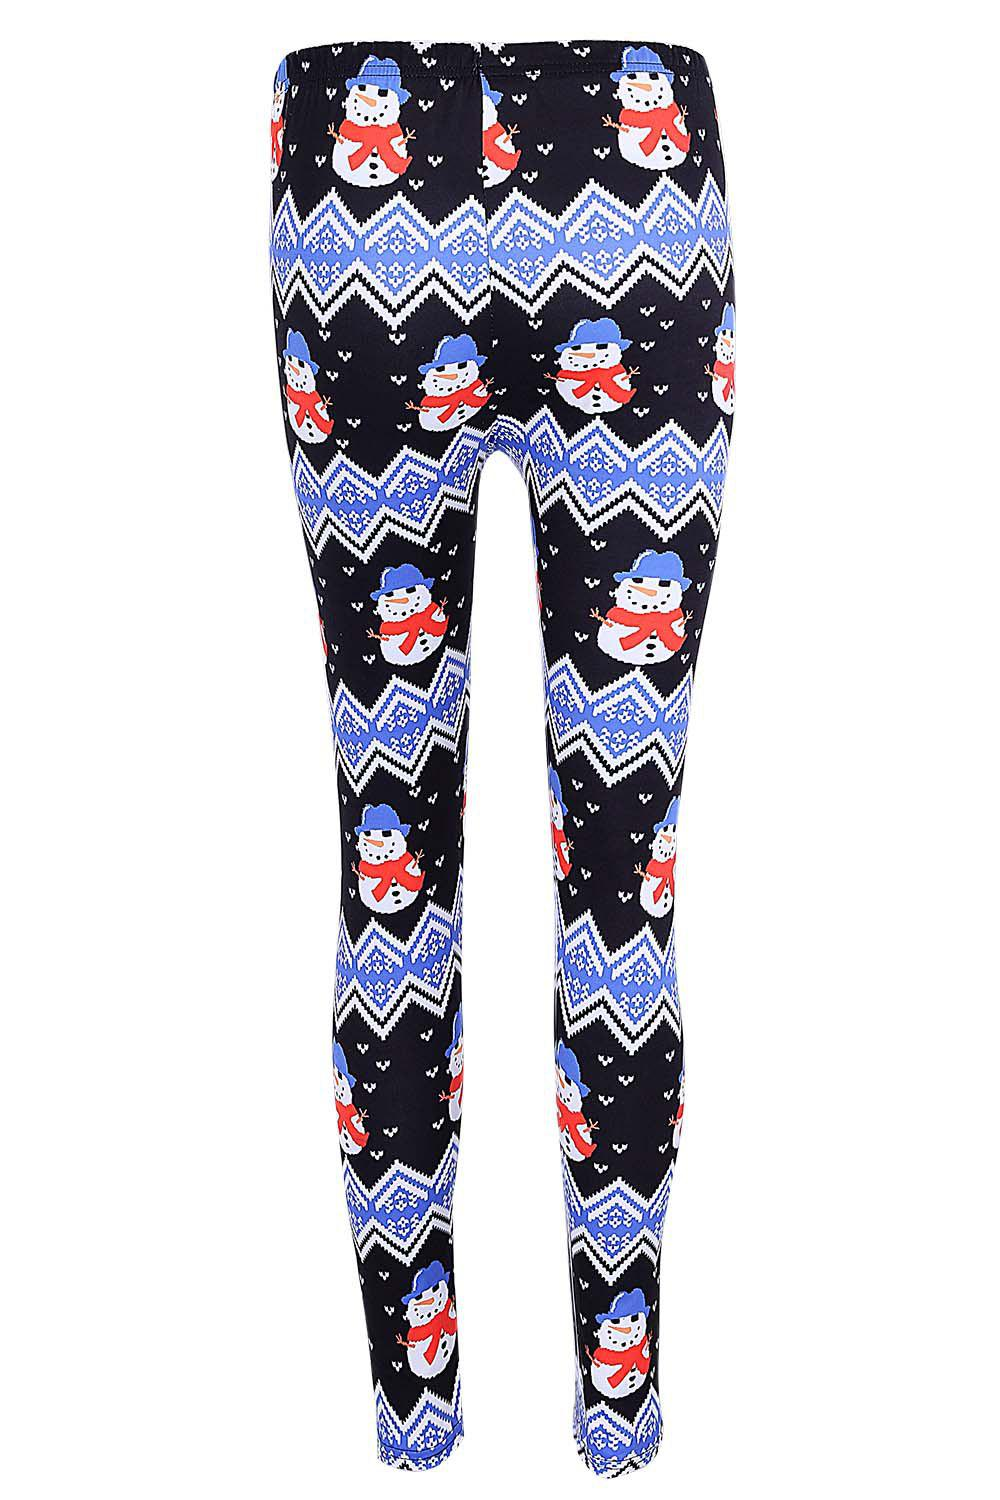 High Waisted Snowman Print Christmas Leggings - BLACK S